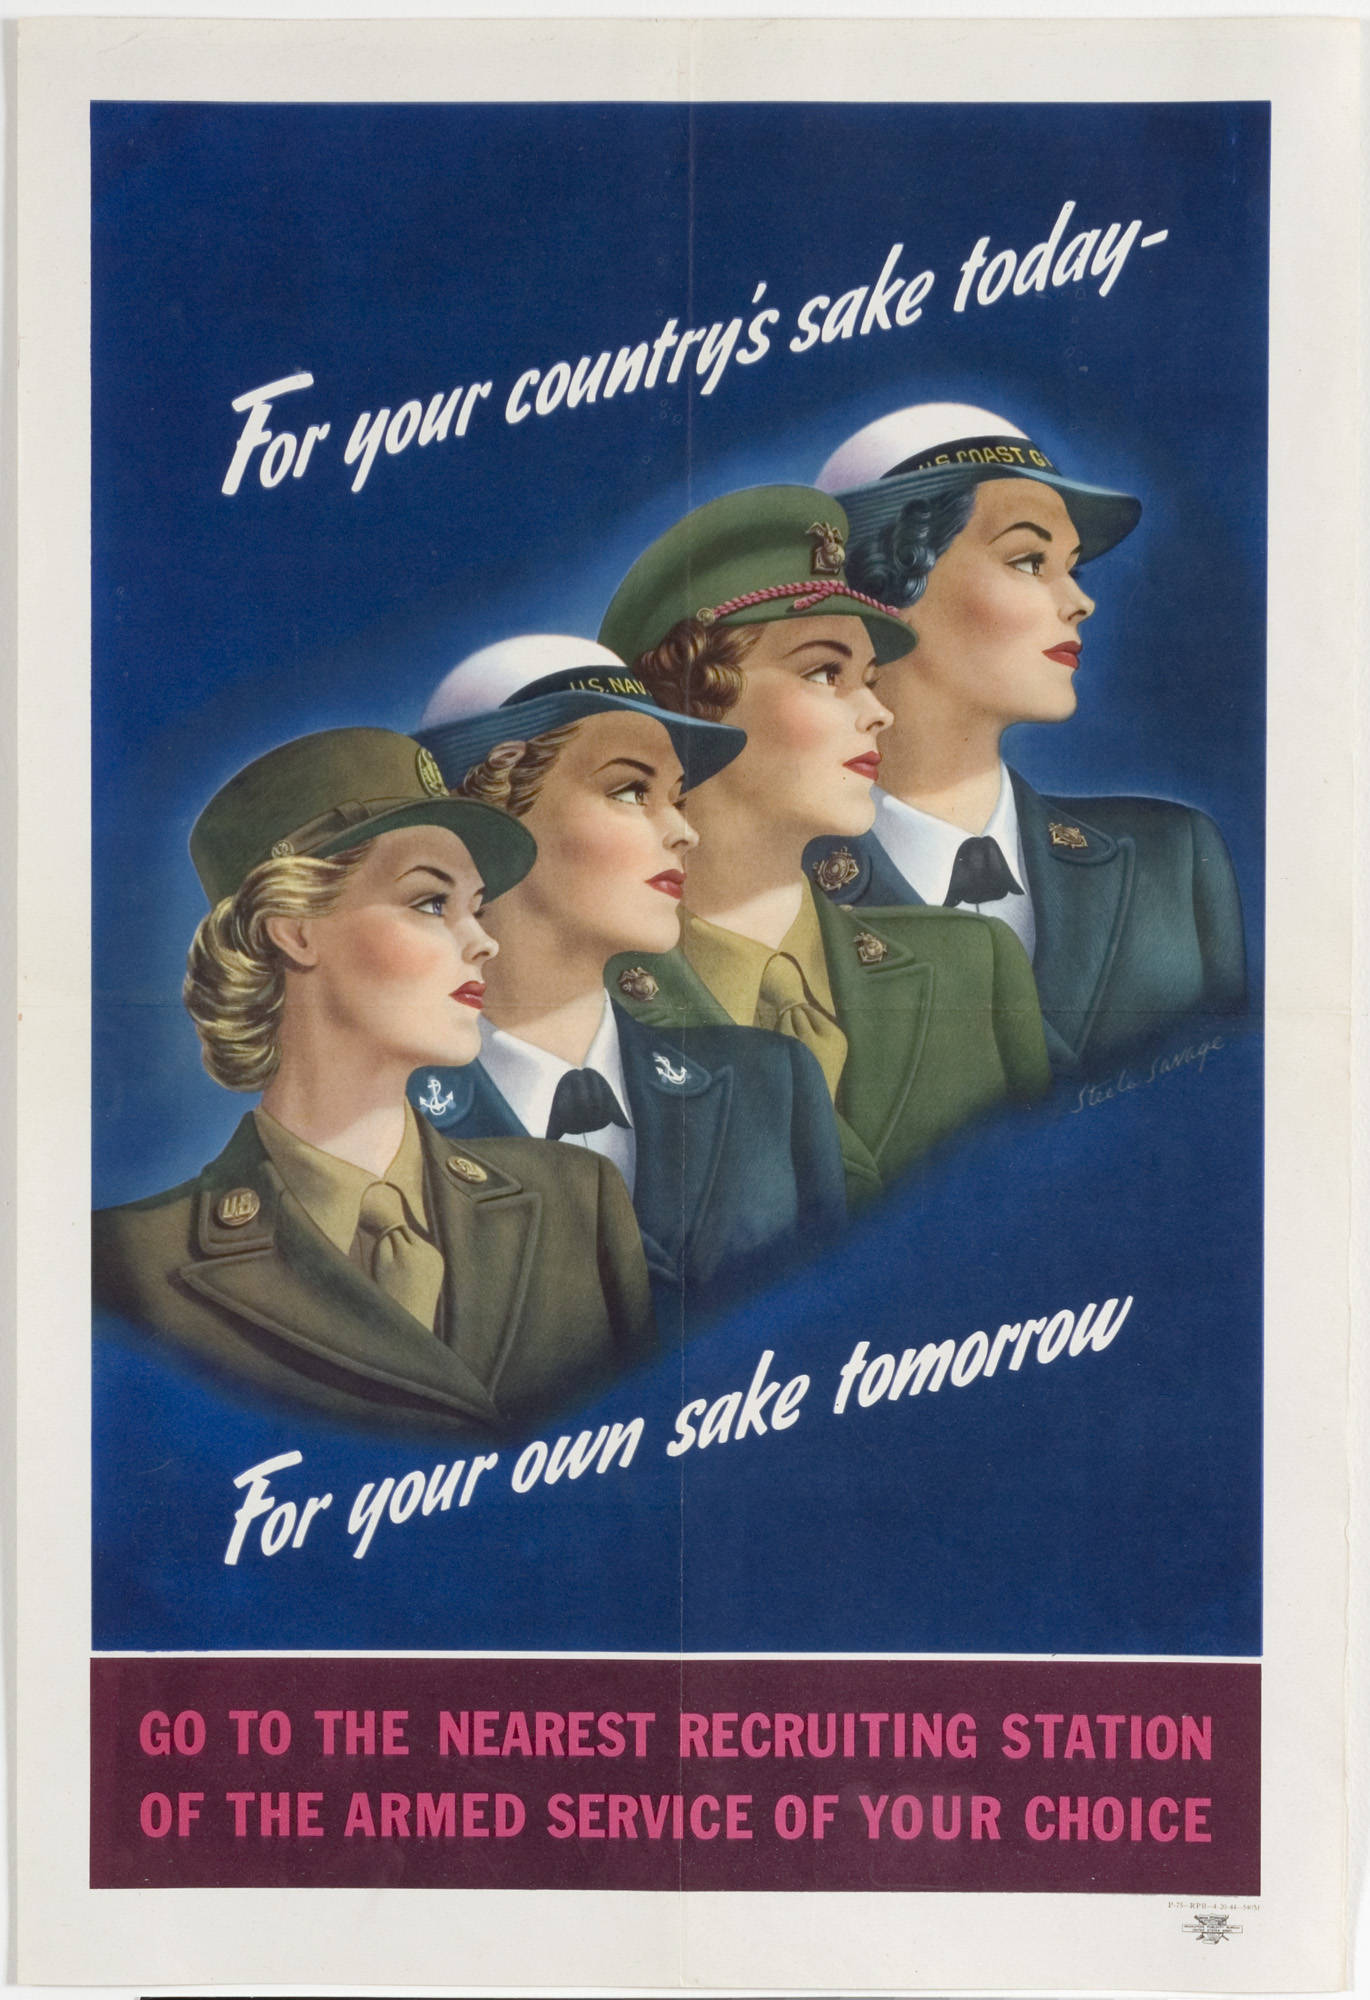 For_your_countrys_sake_today__for_your_own_sake_tomorrow_1944